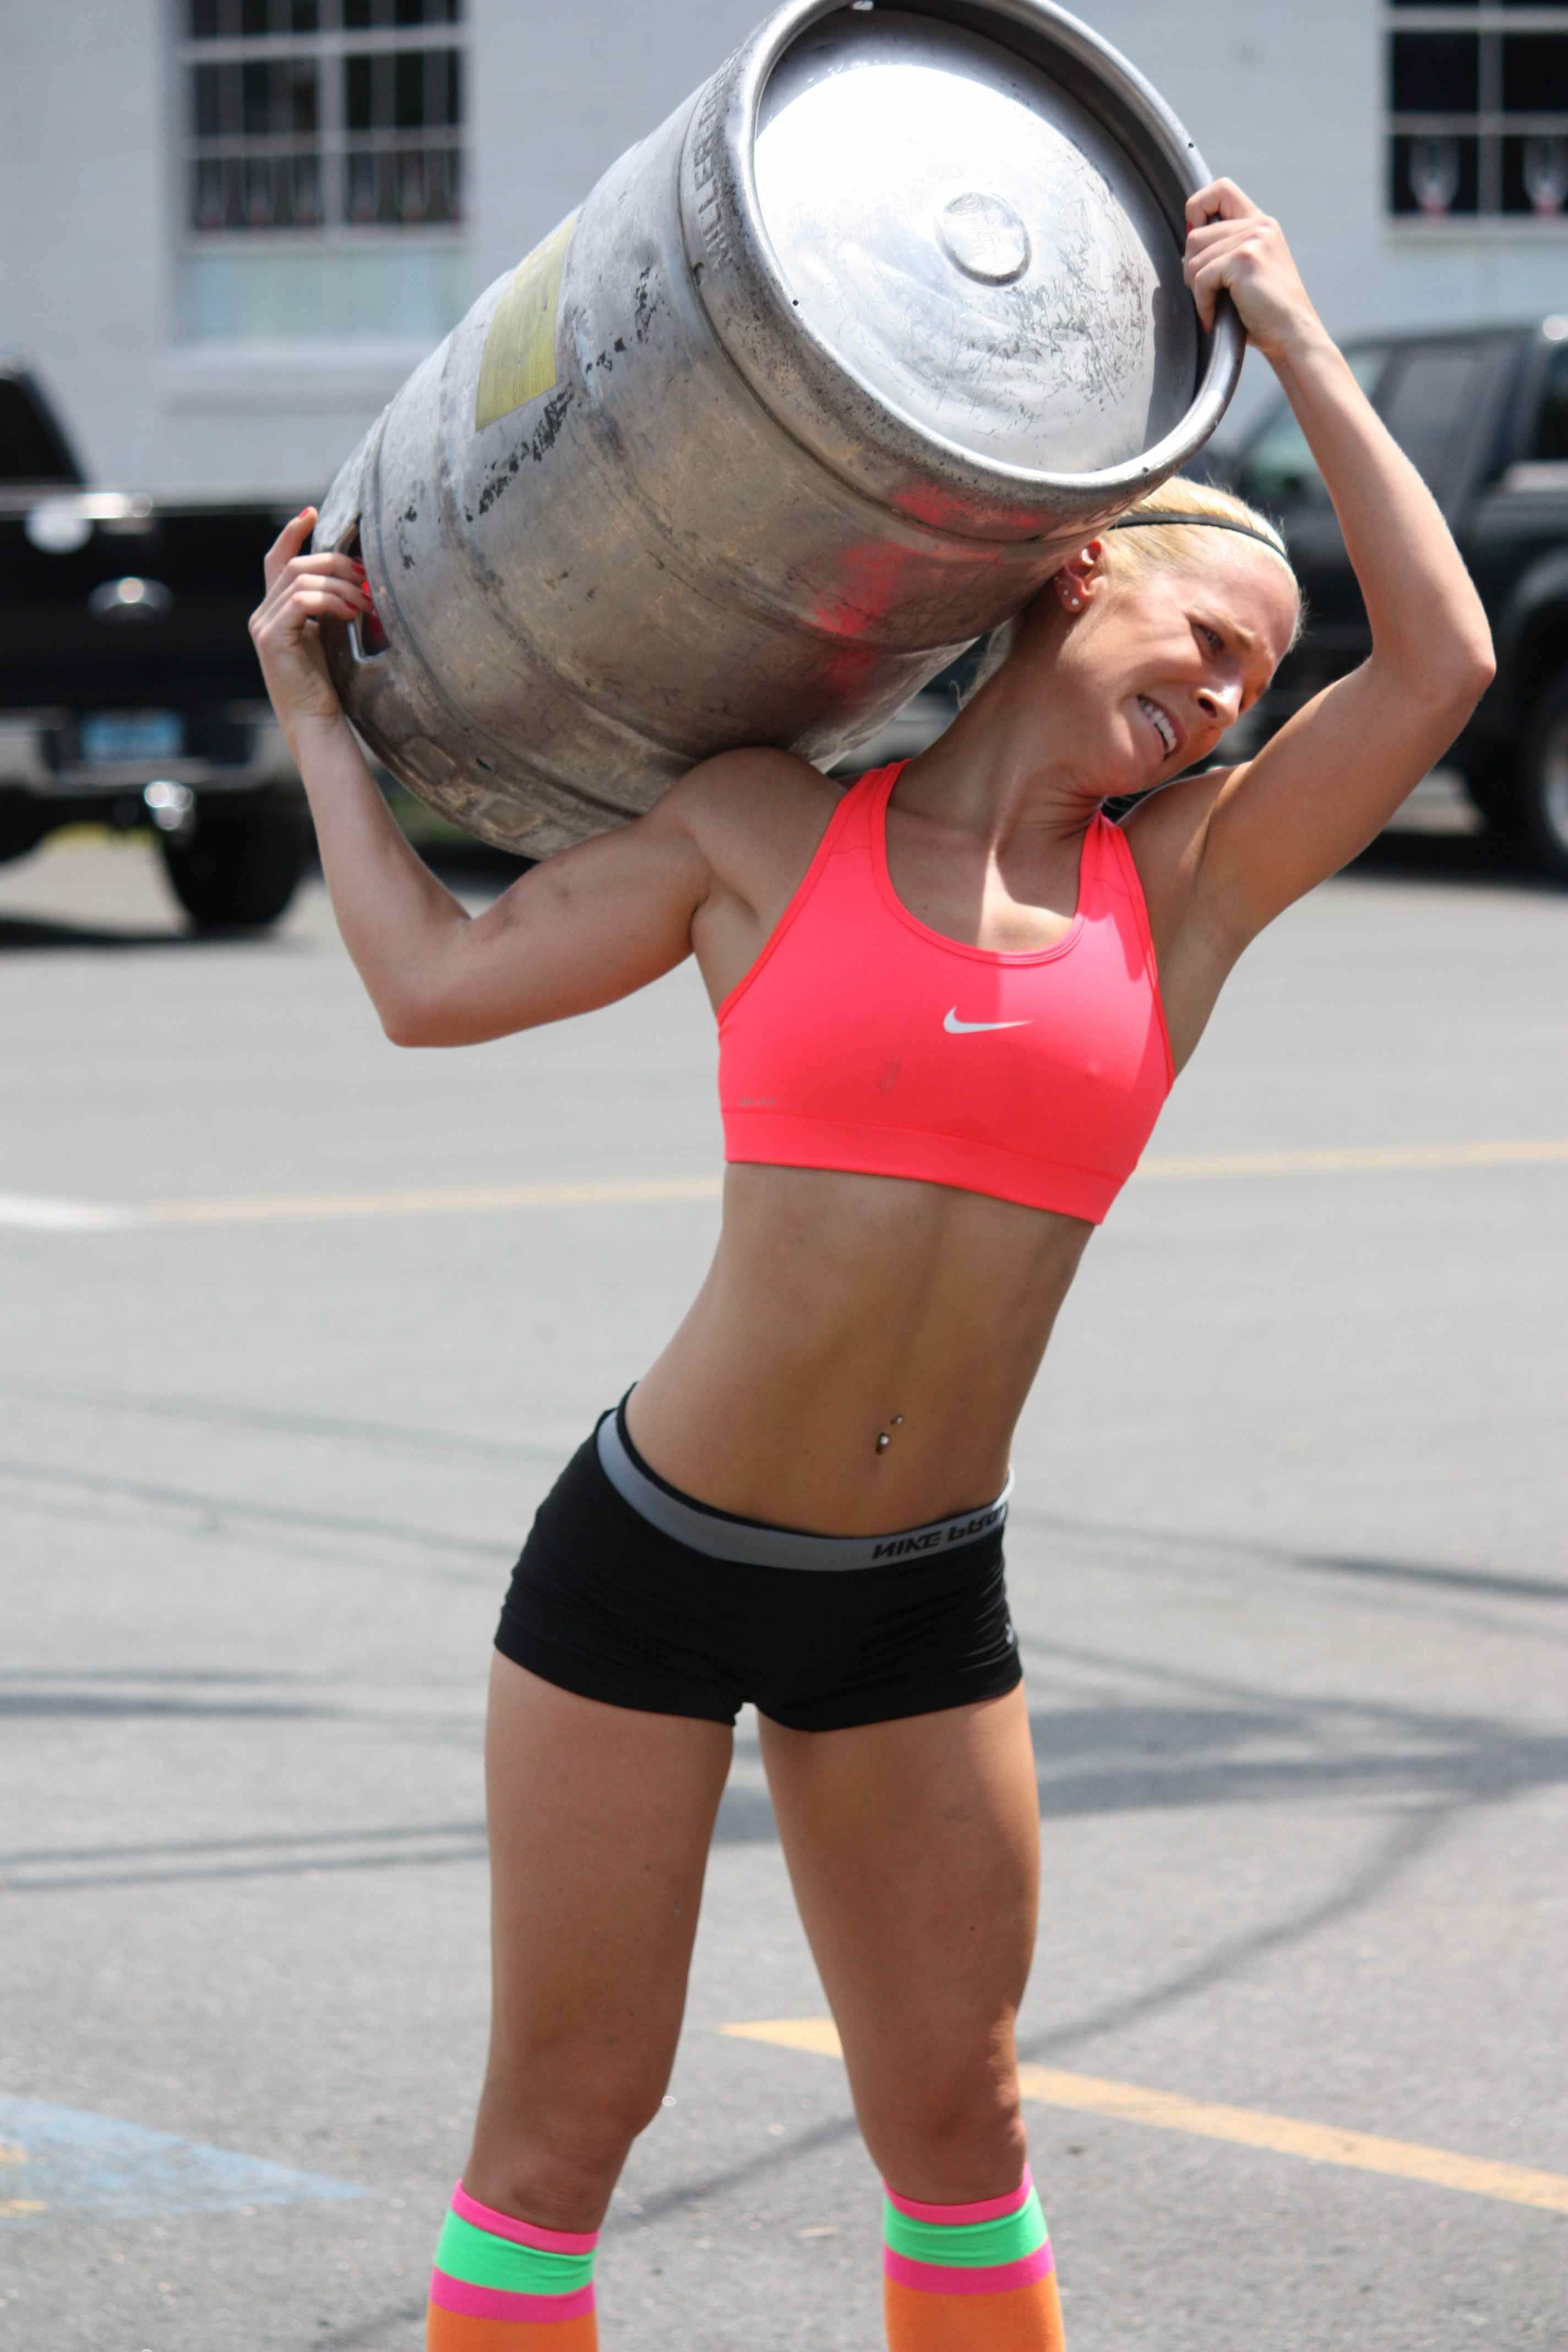 Best Split For Natural Lifters